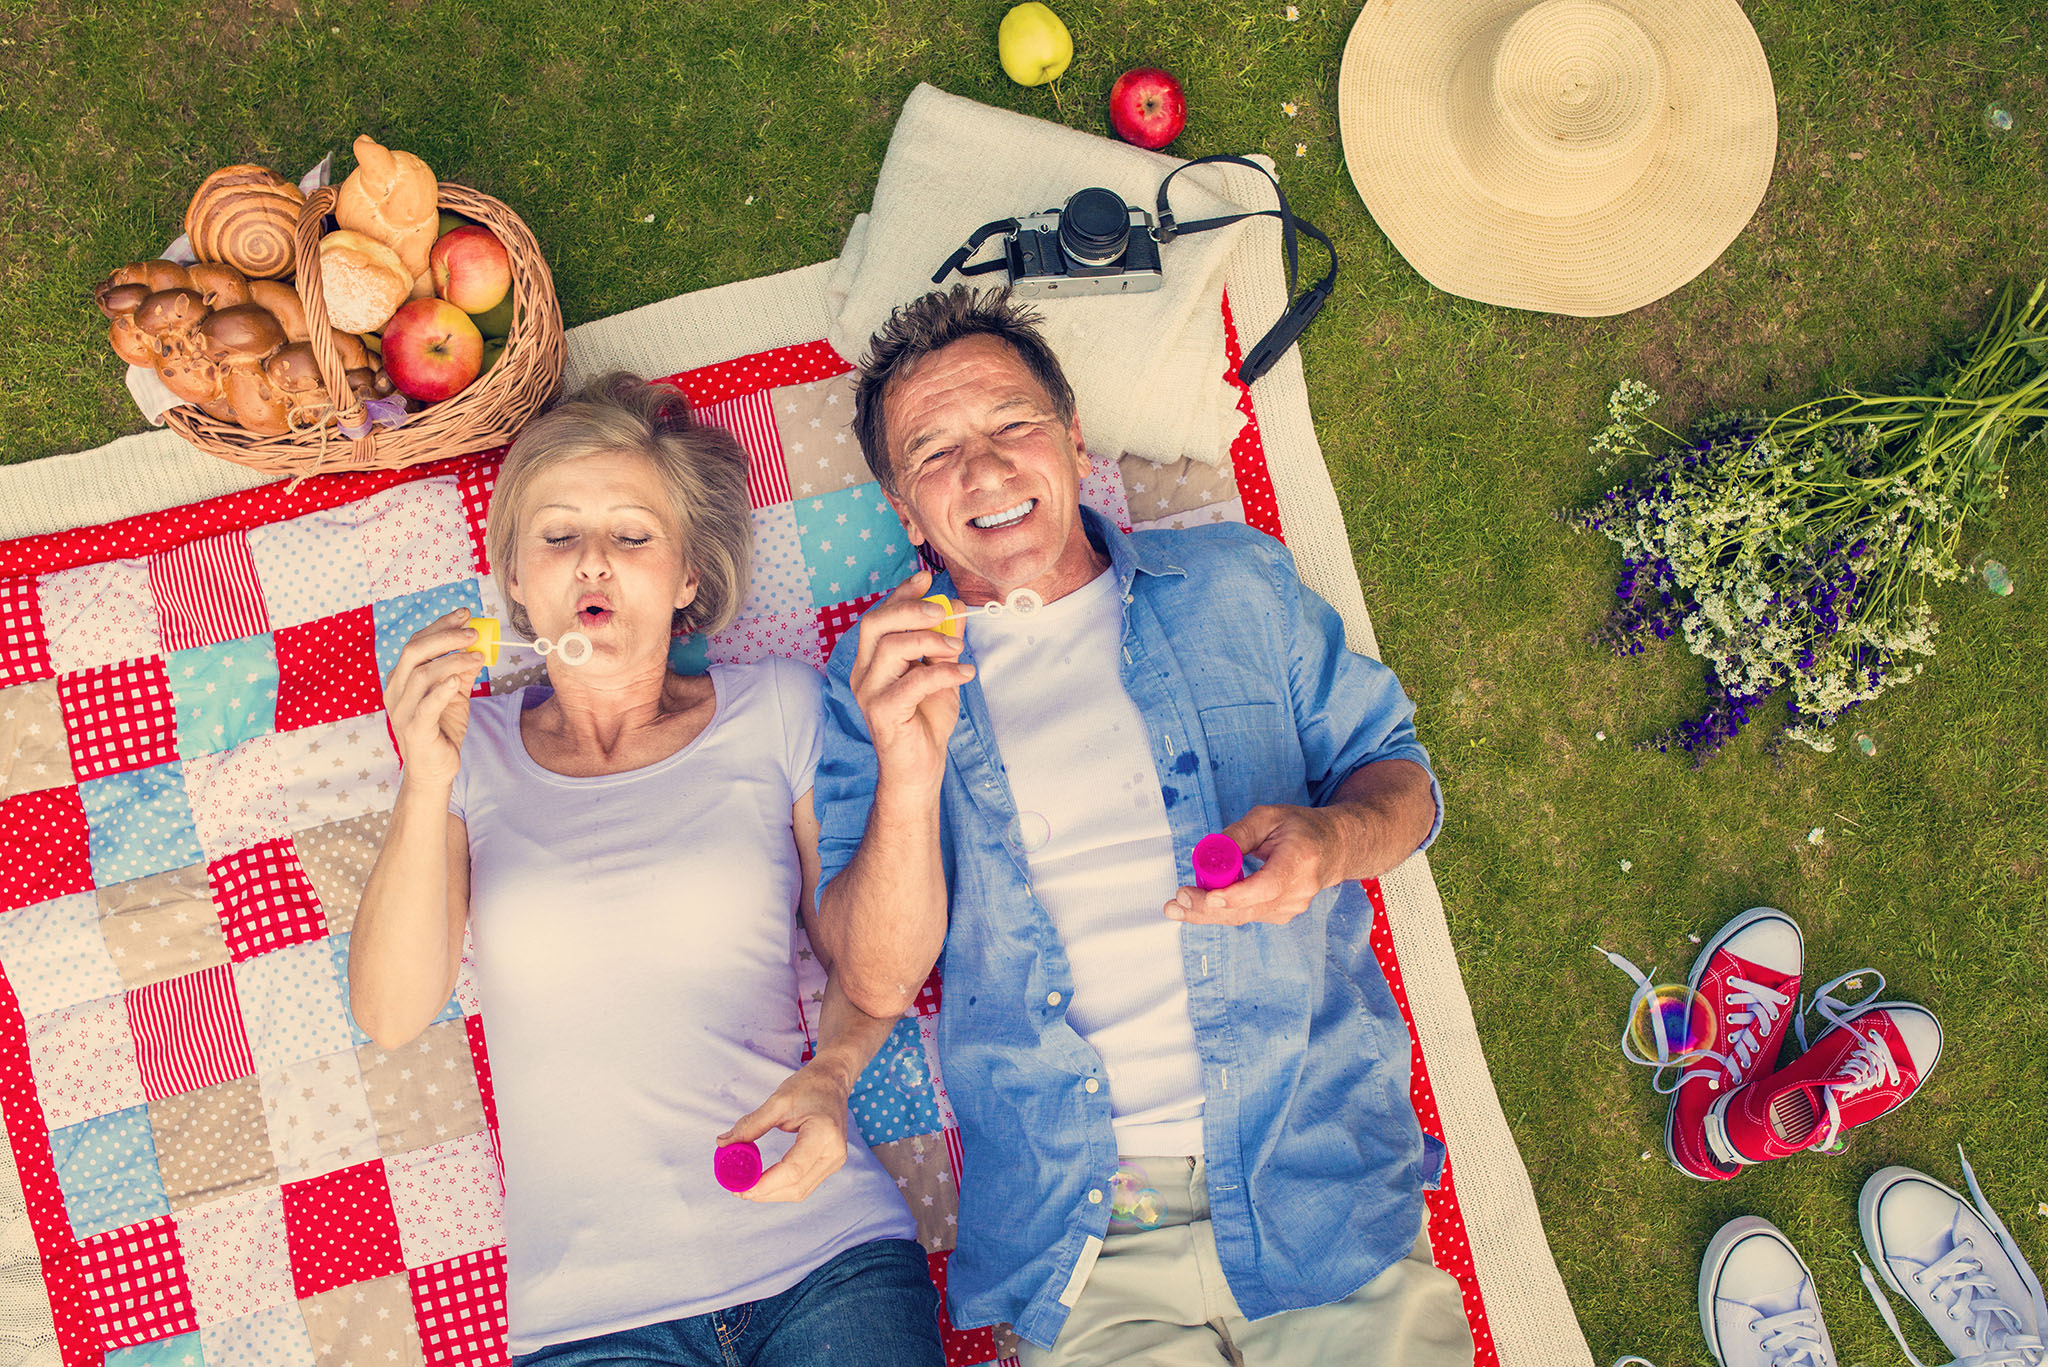 Middle-aged couple on picnic blanket blowing bubbles together